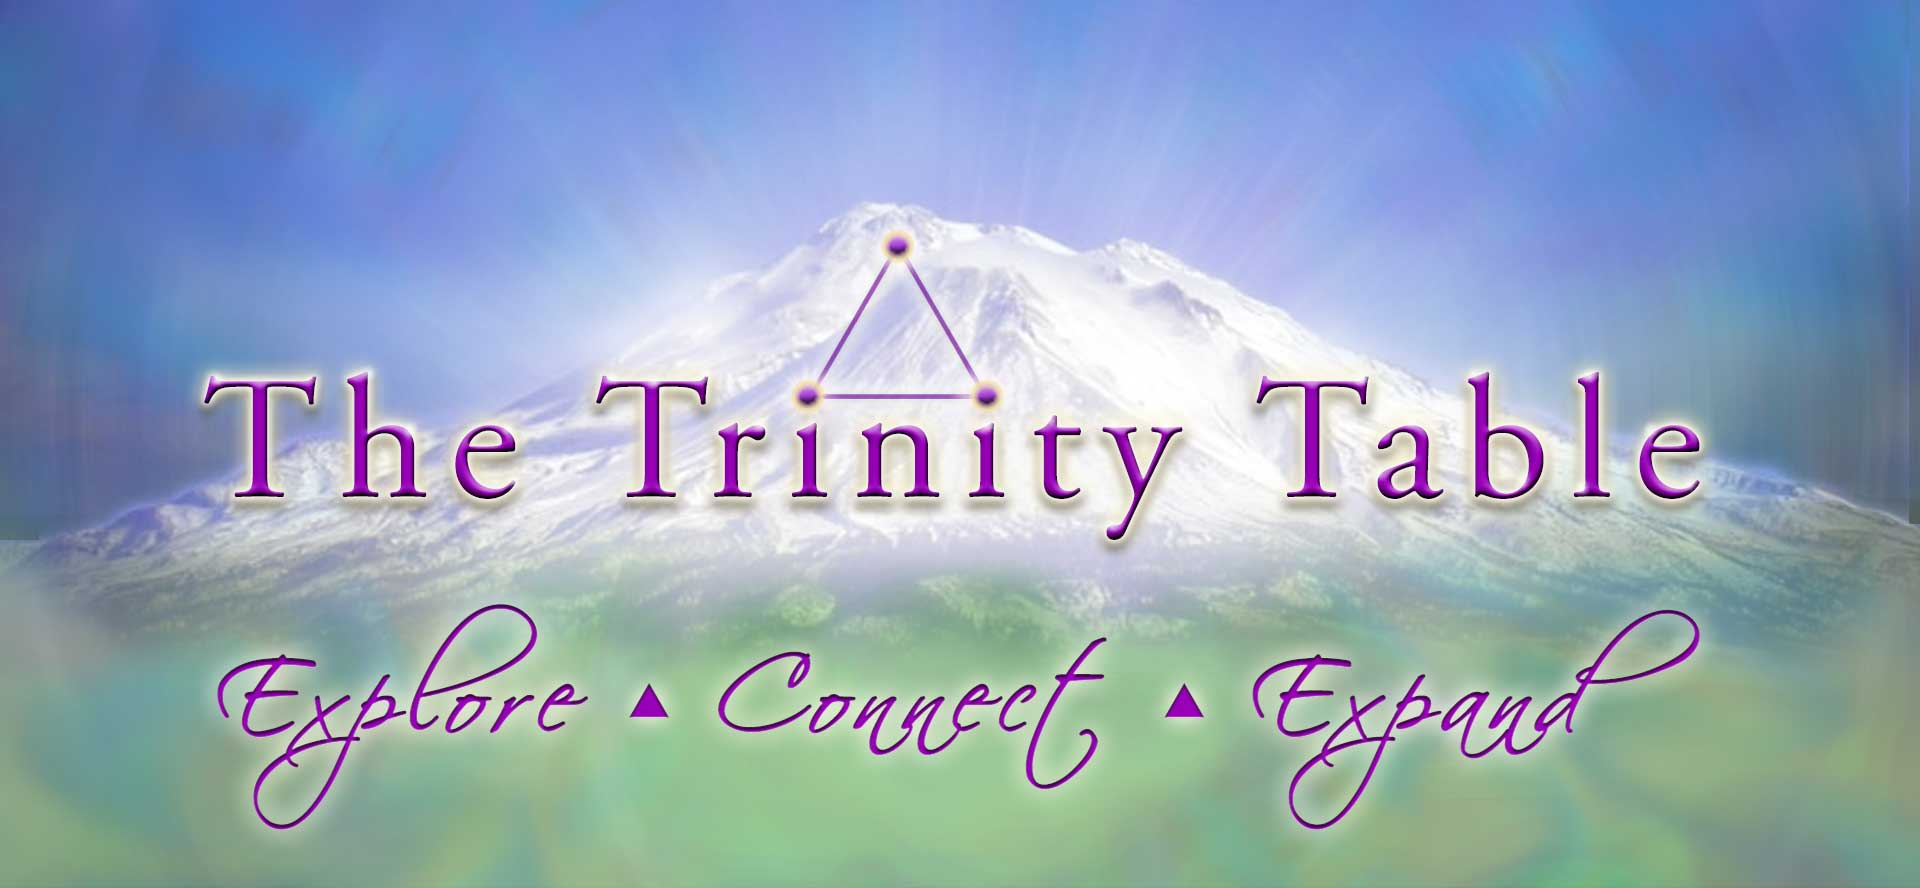 Trinity Table of Mount Shasta - Explore, Connect, Expand